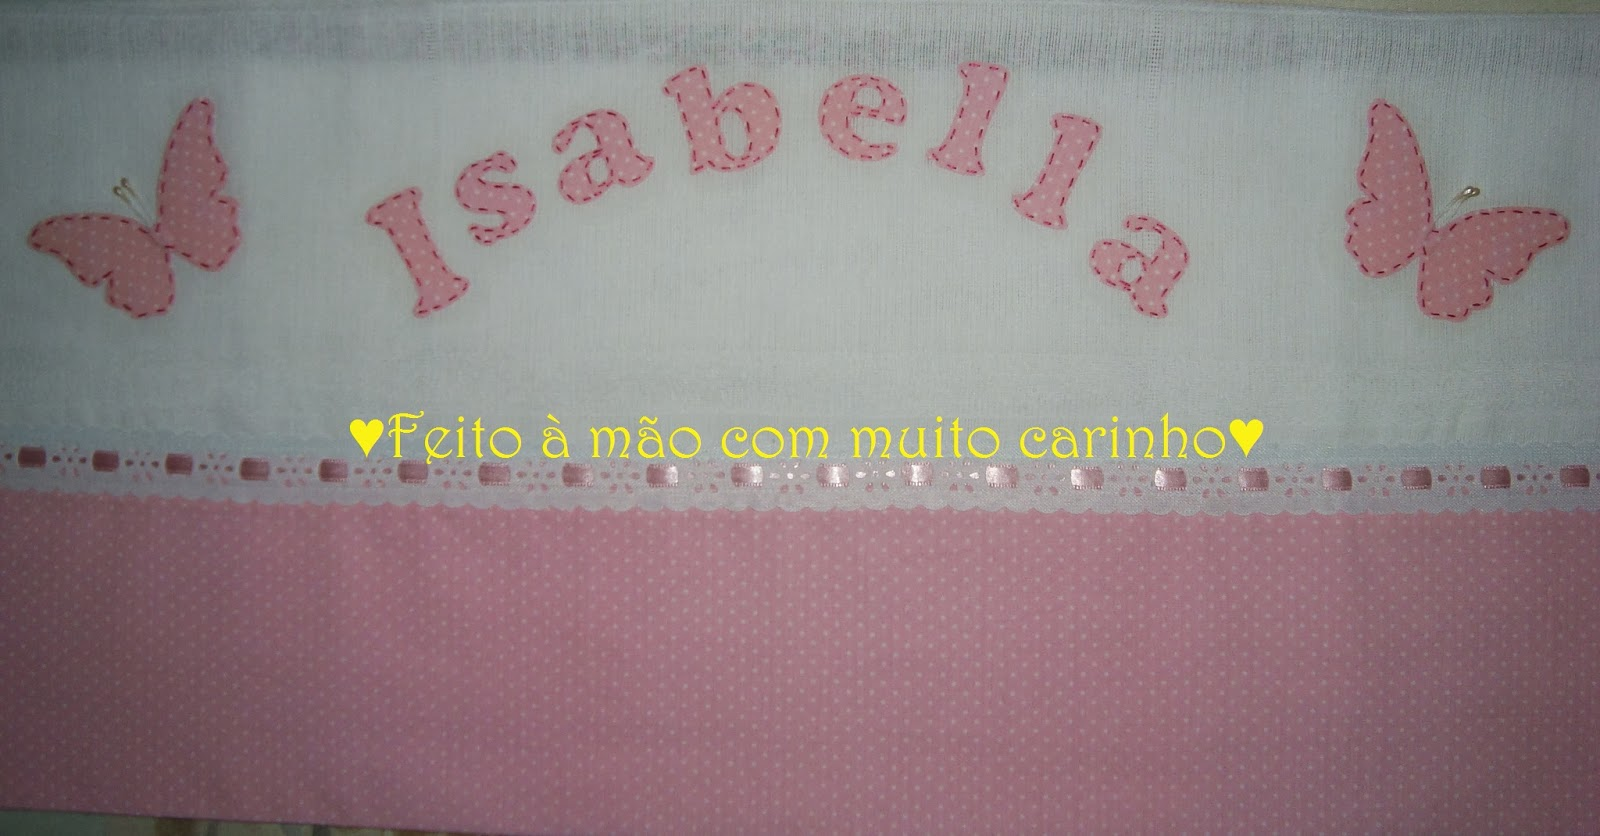 Fralda com patch aplique